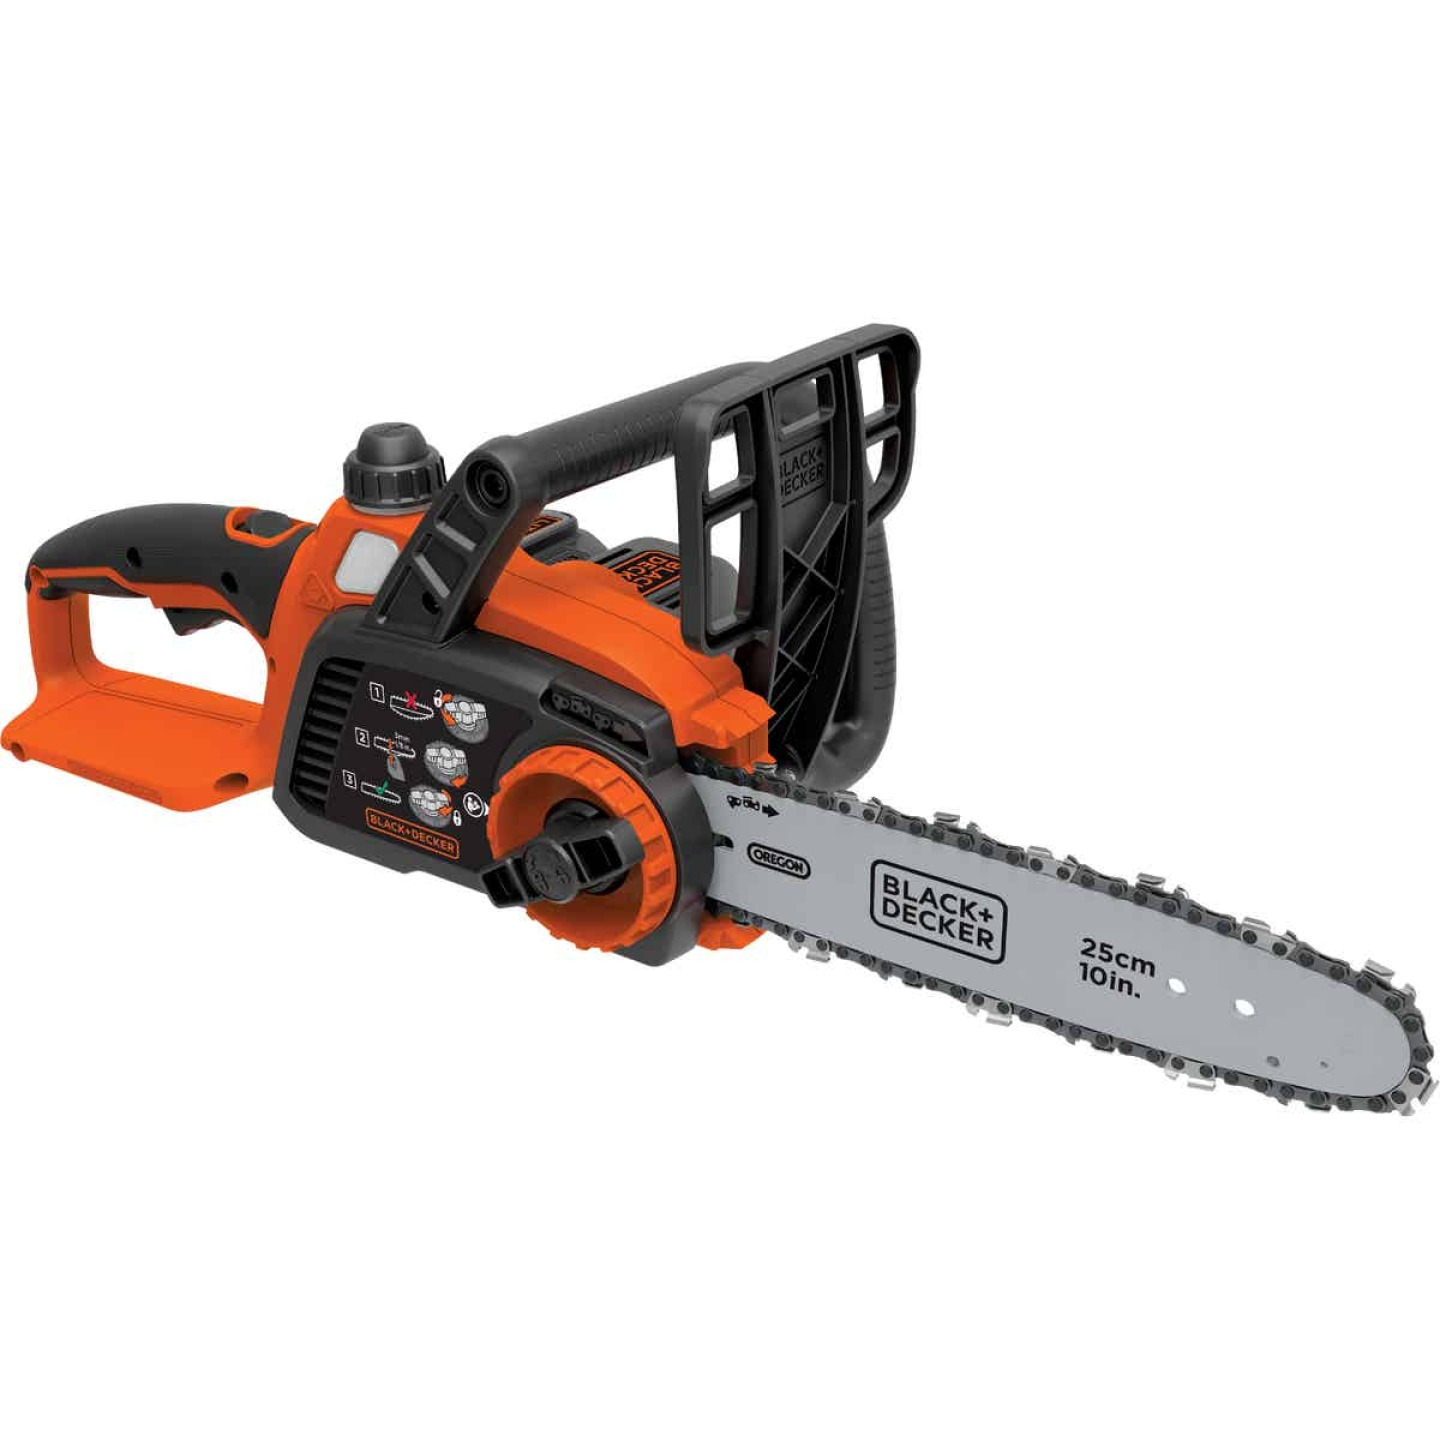 Black & Decker 10 In. 20V MAX Lithium Ion Cordless Chainsaw Image 1